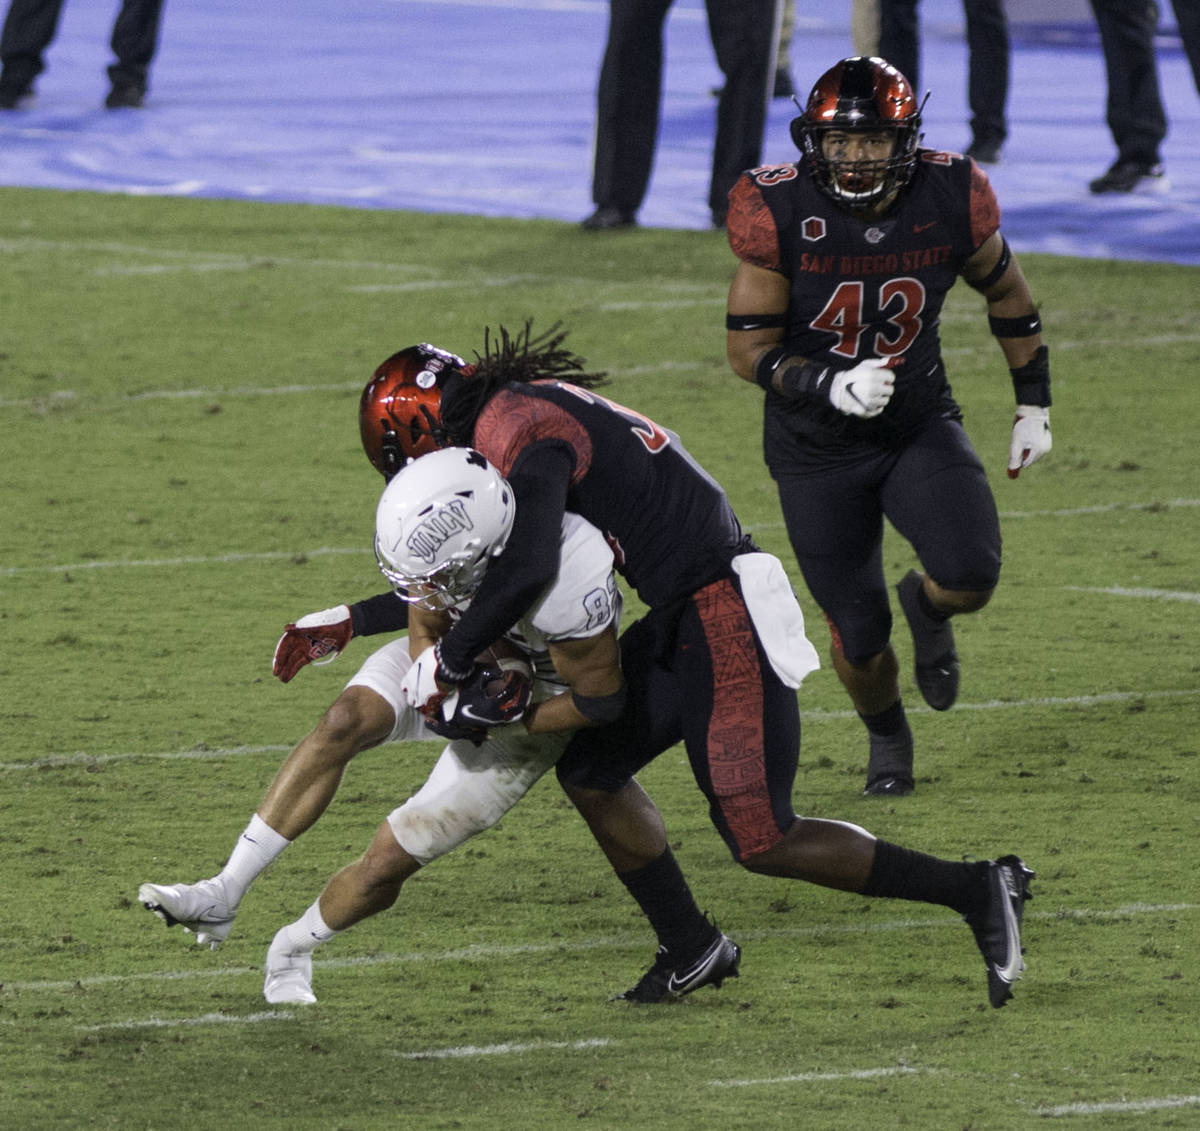 UNLV's Jacob Gasser is tackled by San Diego State's Dwayne Johnson Jr. during Saturday's Mo ...